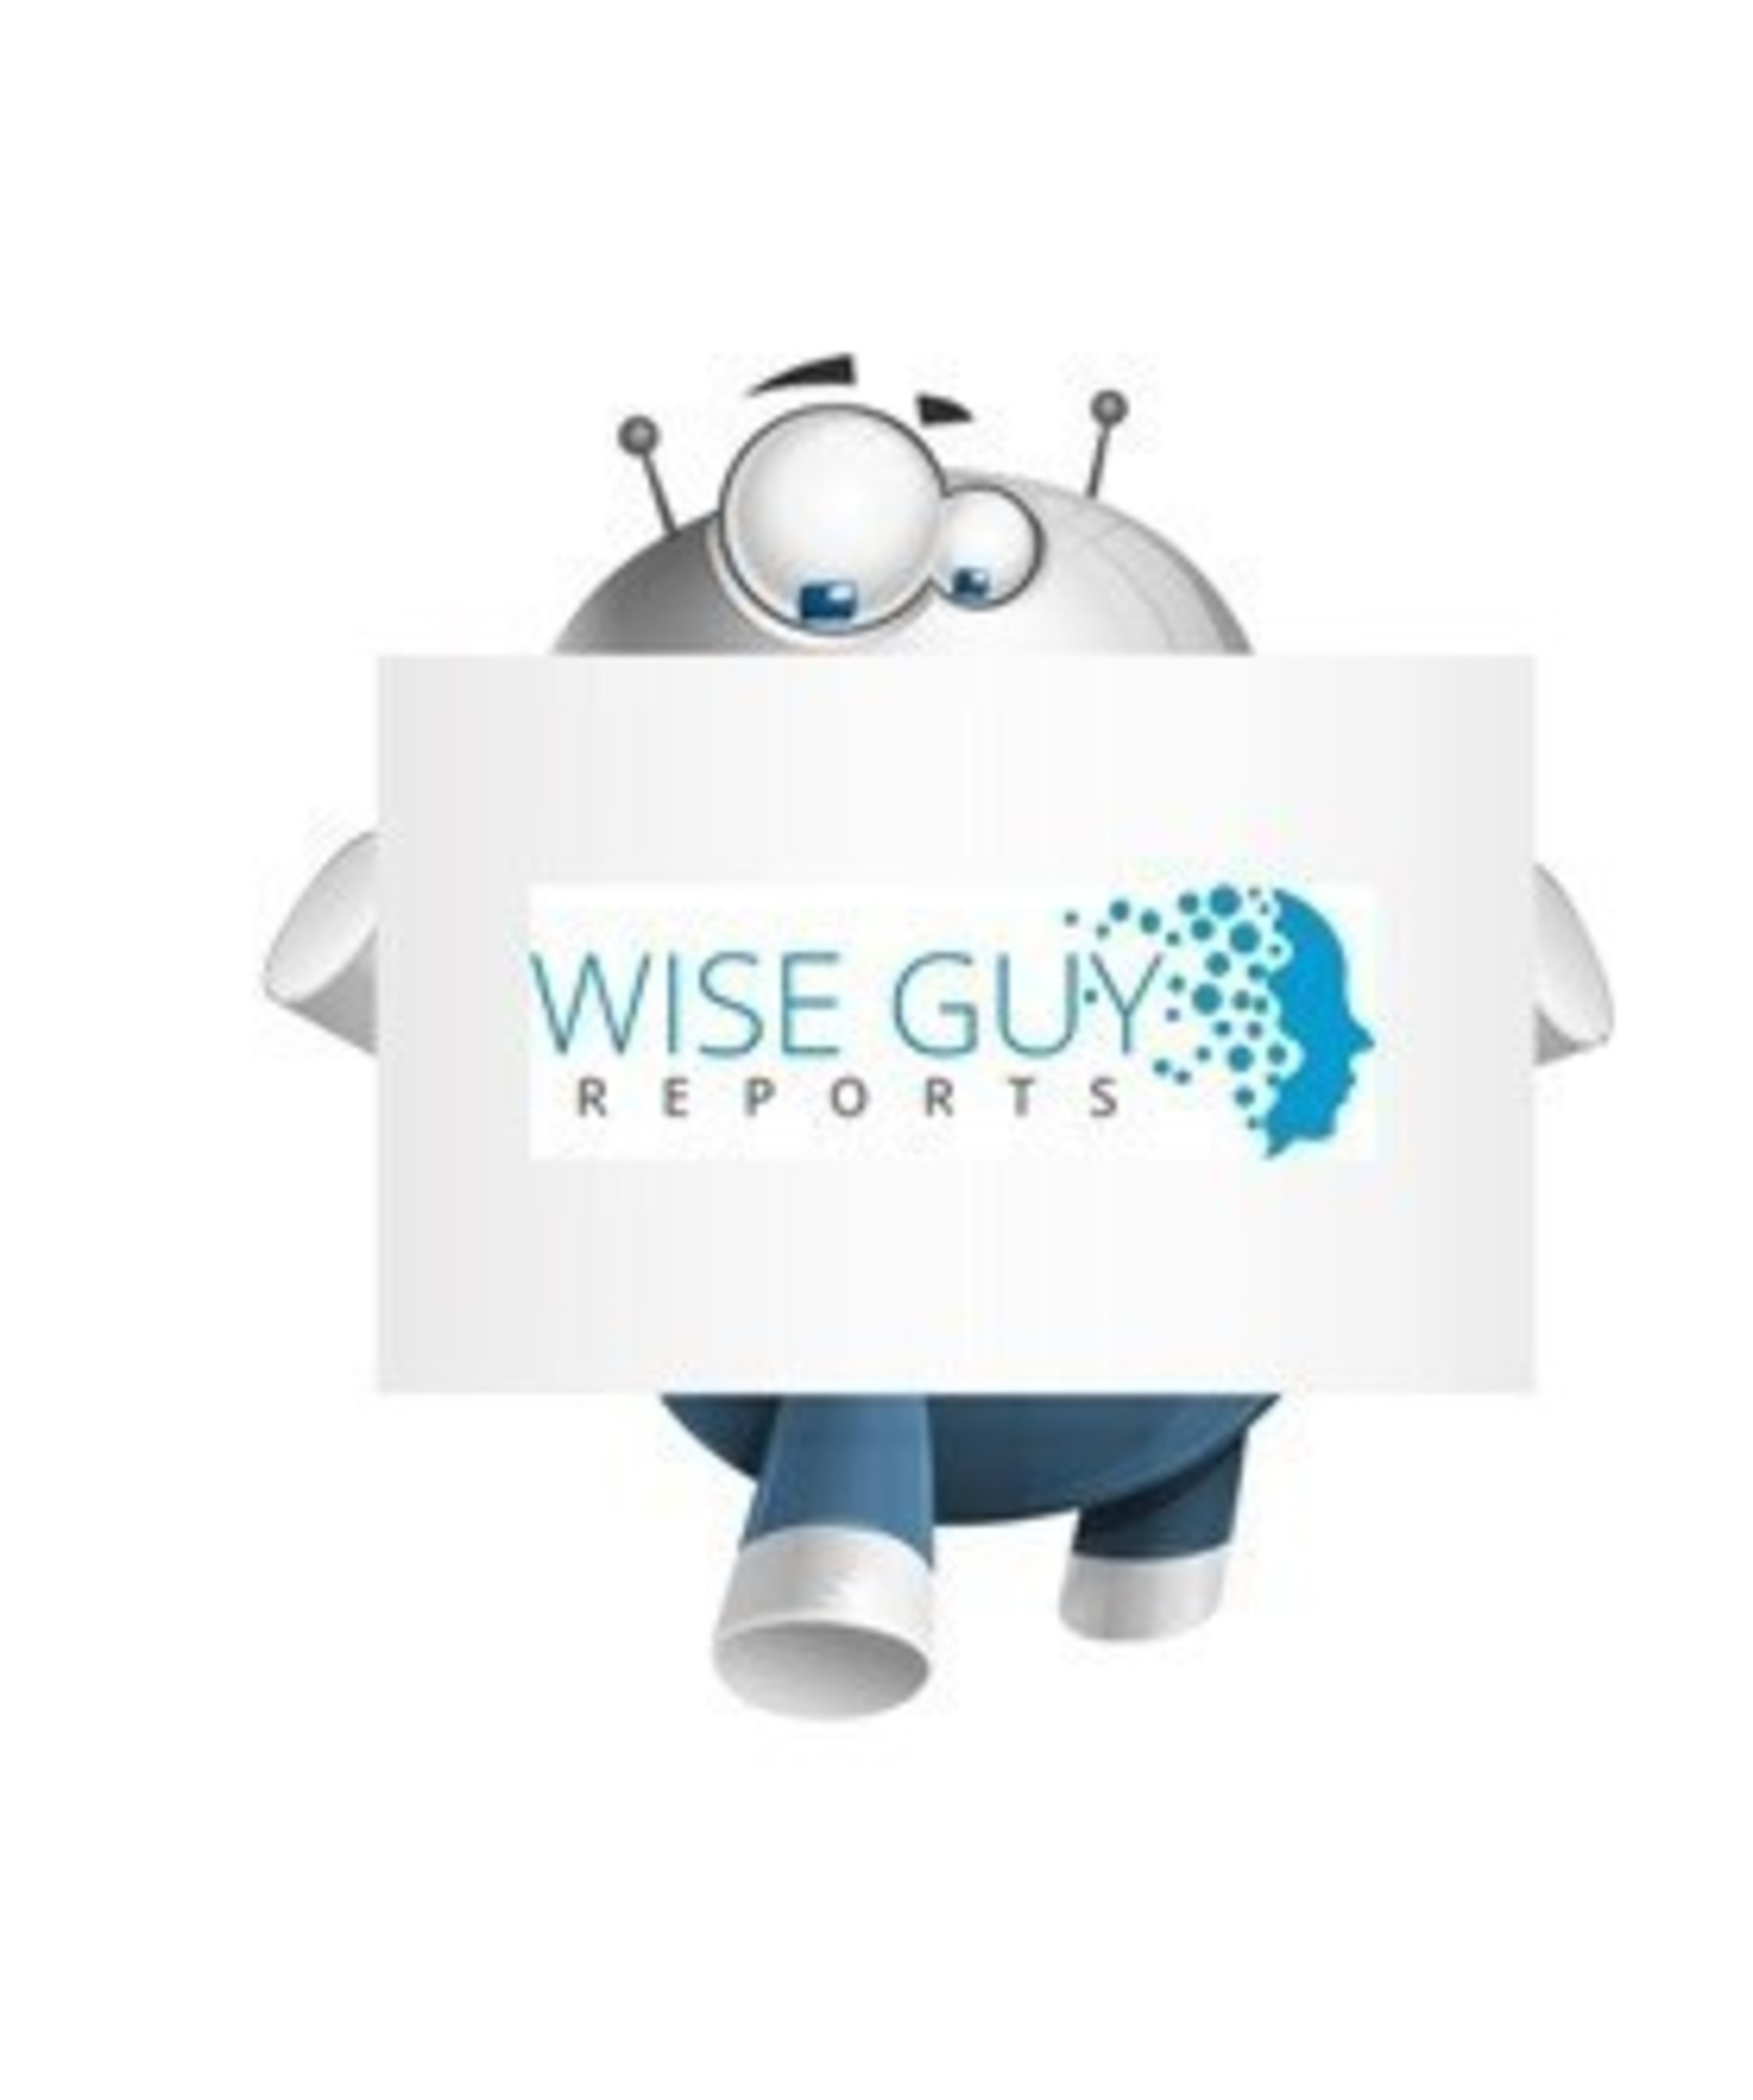 Intelligent Transportation System (Products & Applications) Industry Poised to Reach $42.67 billion by 2022 Says a New Research Report Available at WiseGuyReports.com